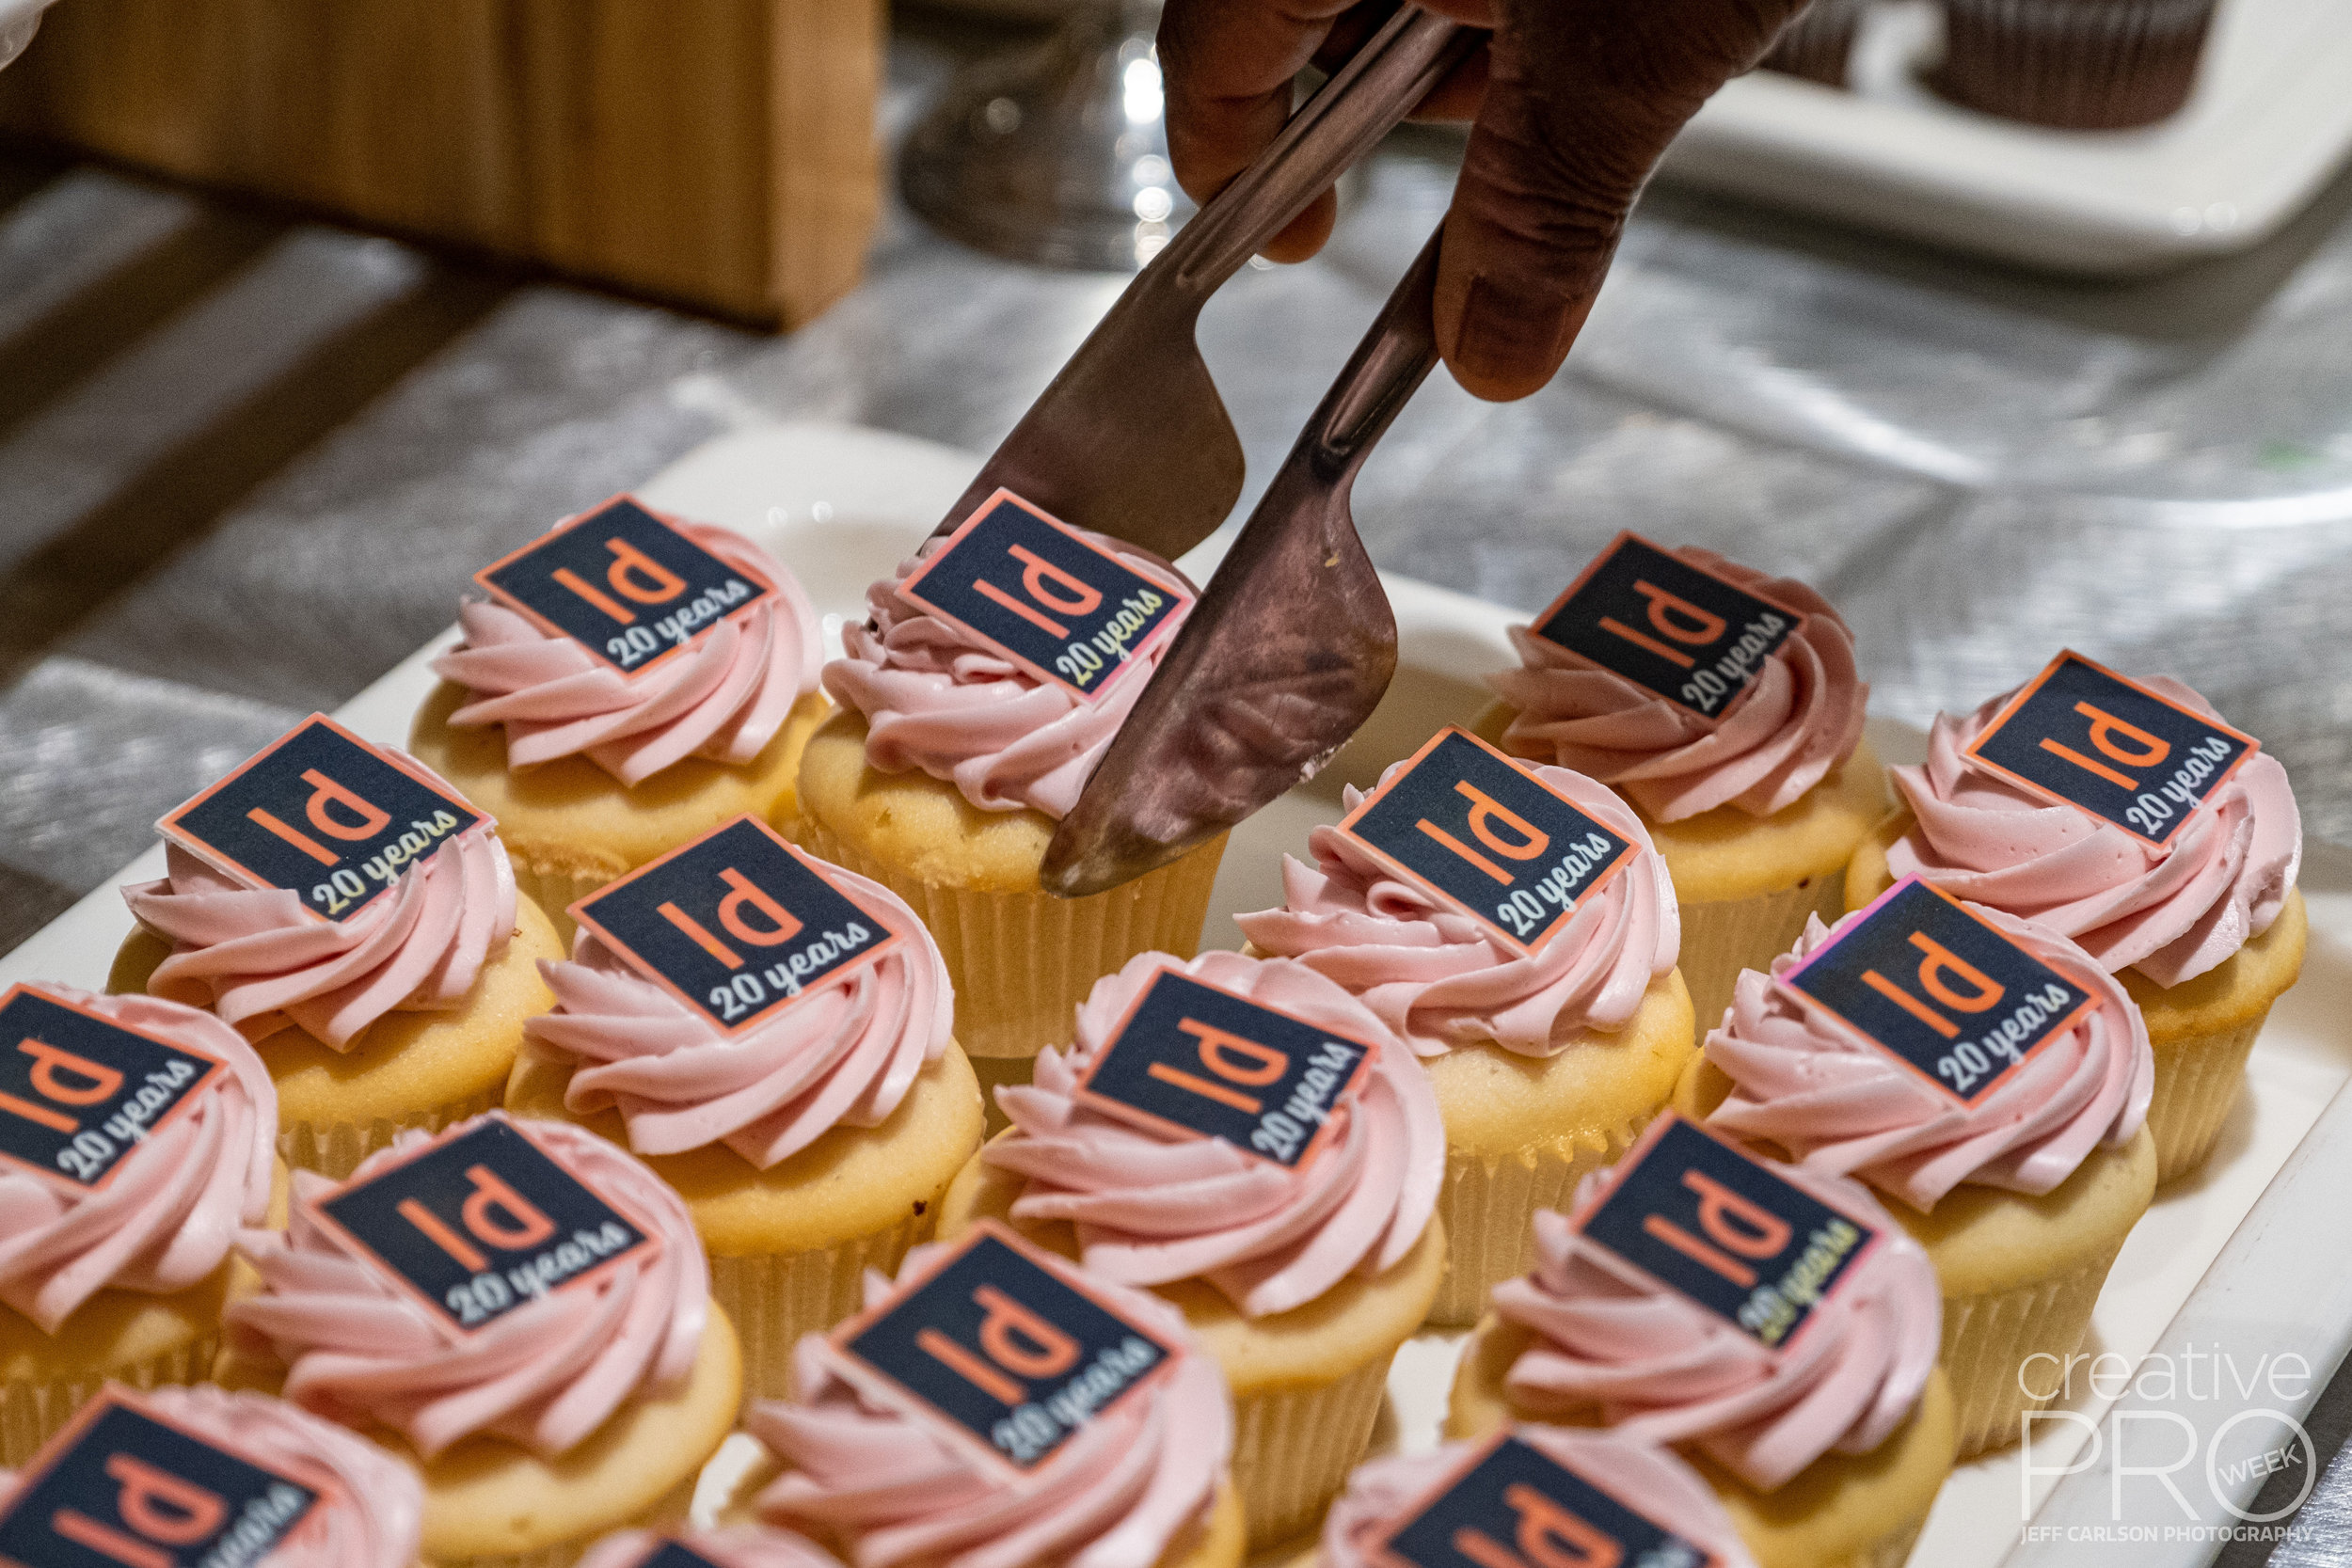 InDesign 20th Anniversary Cupcakes at CreativePro Week 2019  Camera: Fujifilm X-T3 Shutter speed: 1/200 sec Aperture: f/2.8 ISO: 1600 Lens: Fujifilm XF 16-55mm f/2.8 LM WR Photo: Jeff Carlson, courtesy of CreativePro Week